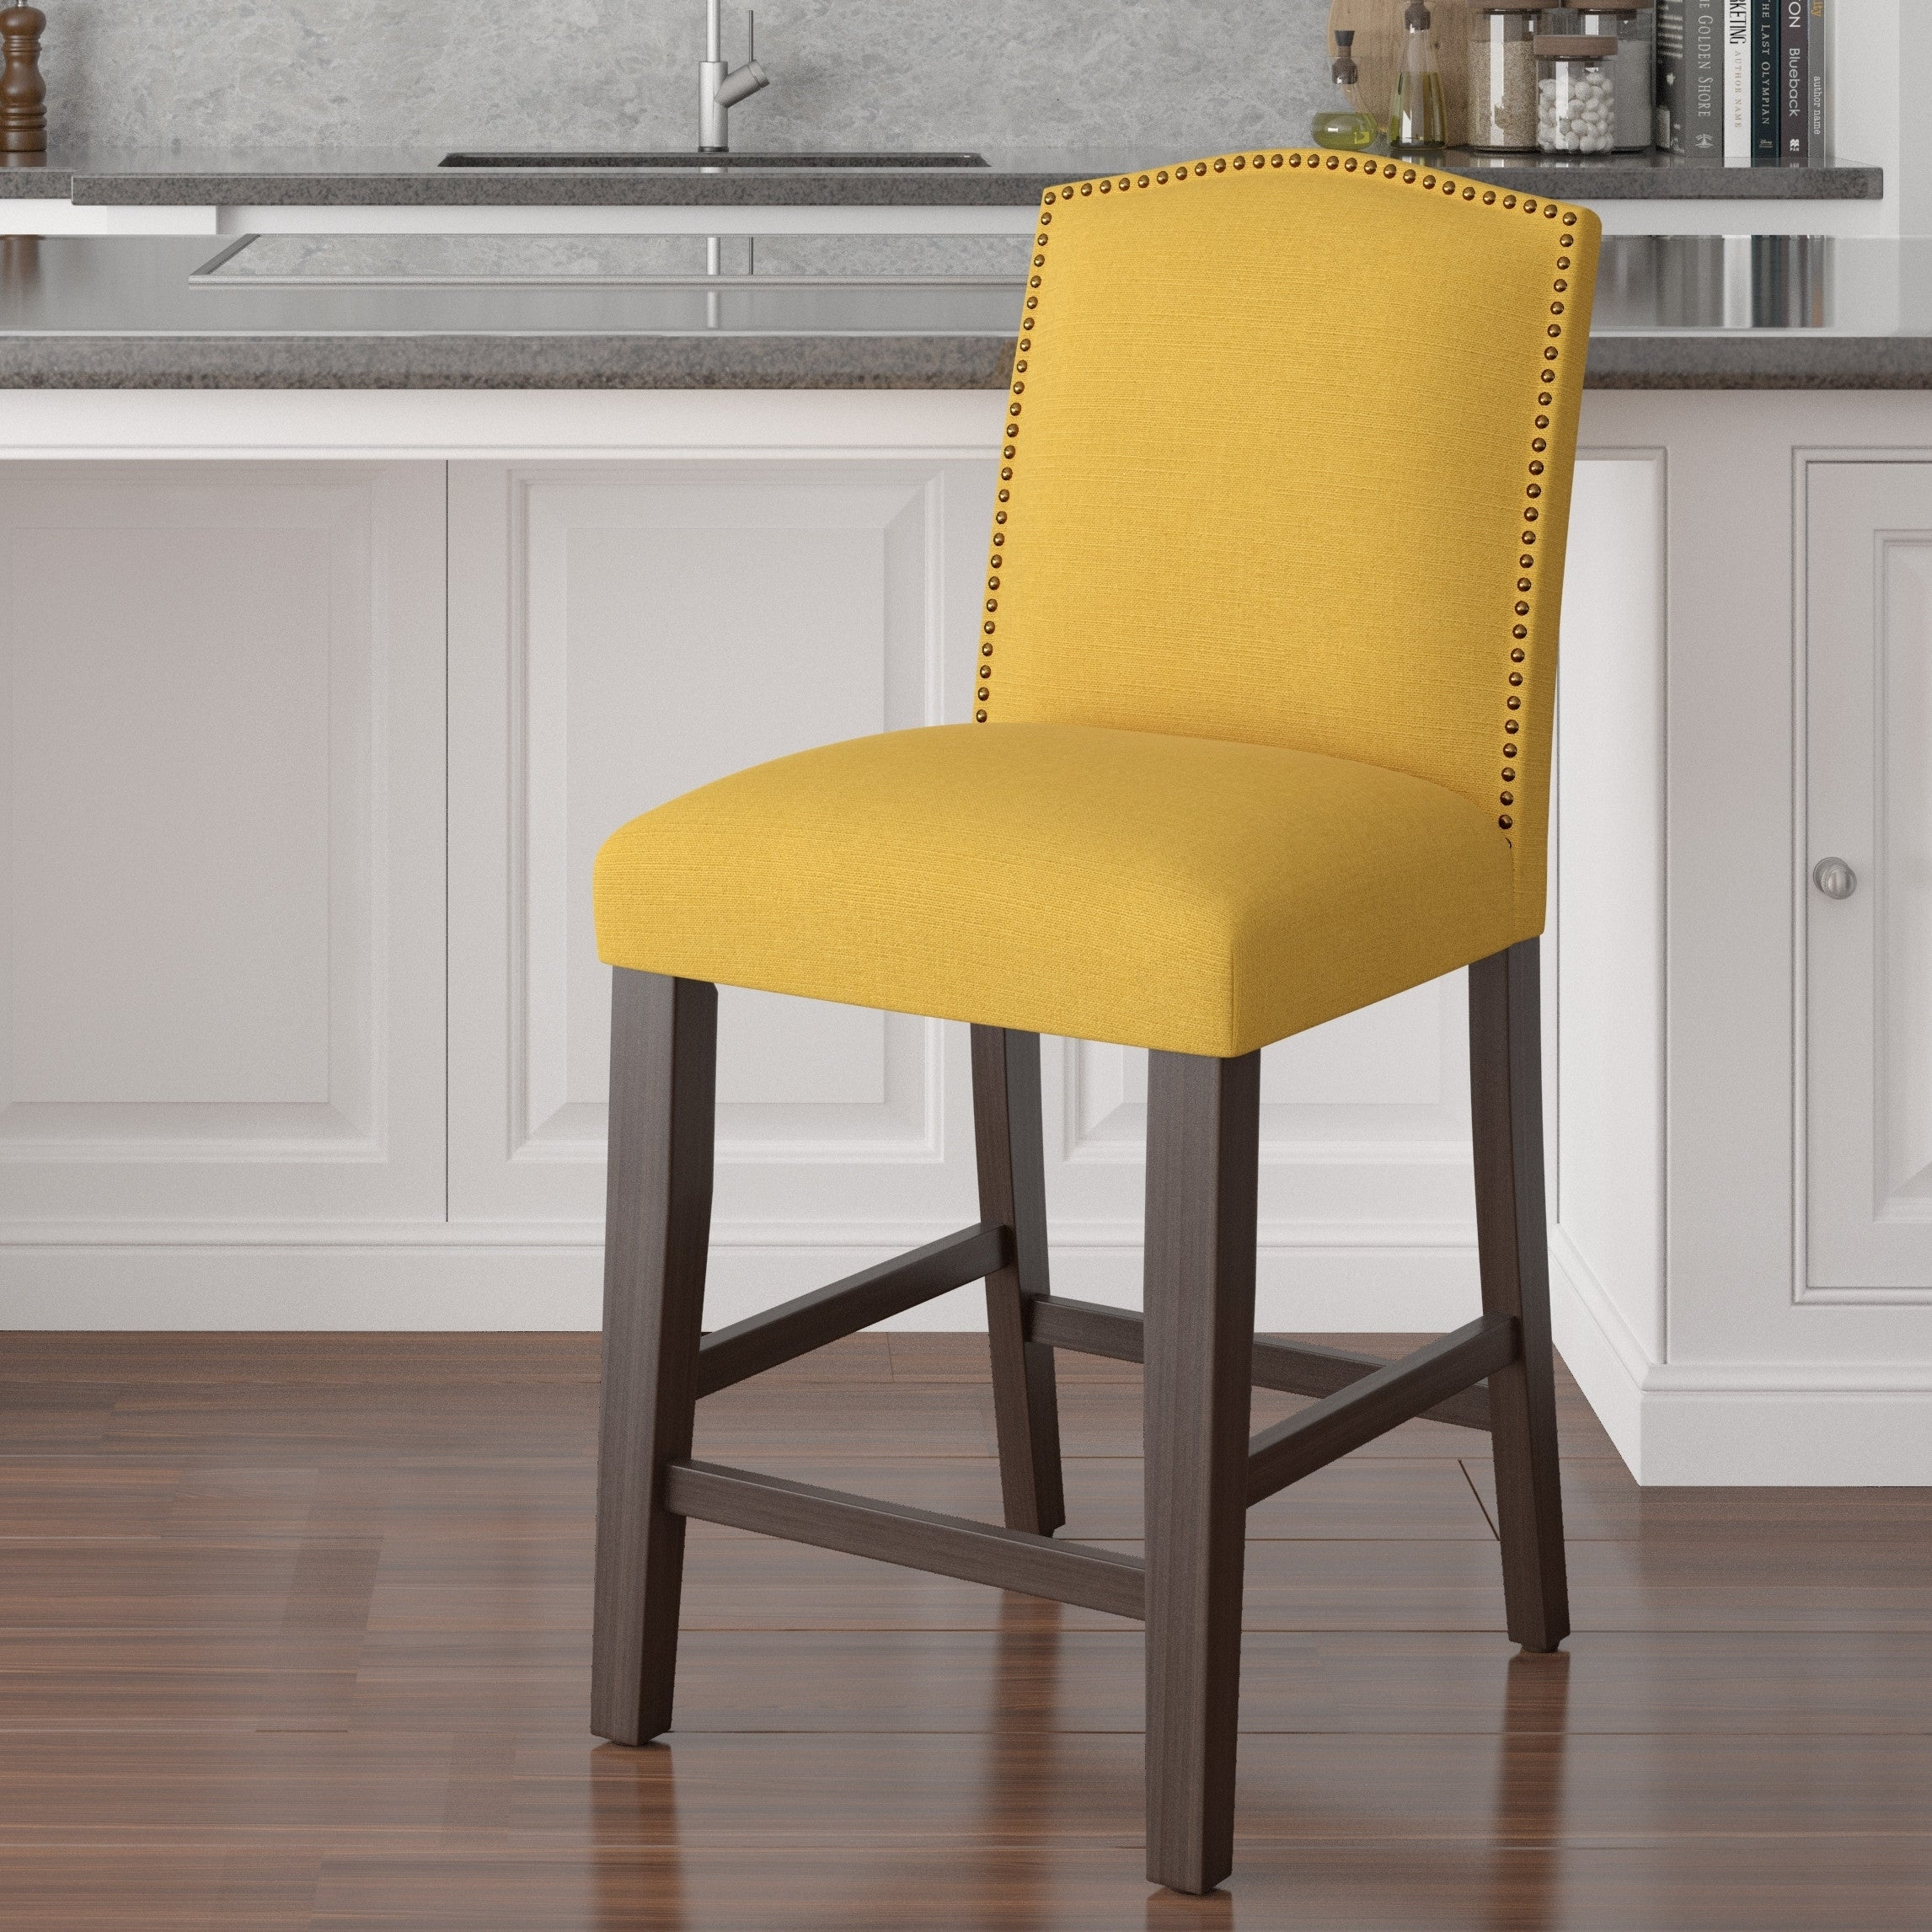 Wondrous Outlet Store Ab0E3 677Cd Yellow Counter Stools Cfdrgroup Co Uk Gmtry Best Dining Table And Chair Ideas Images Gmtryco